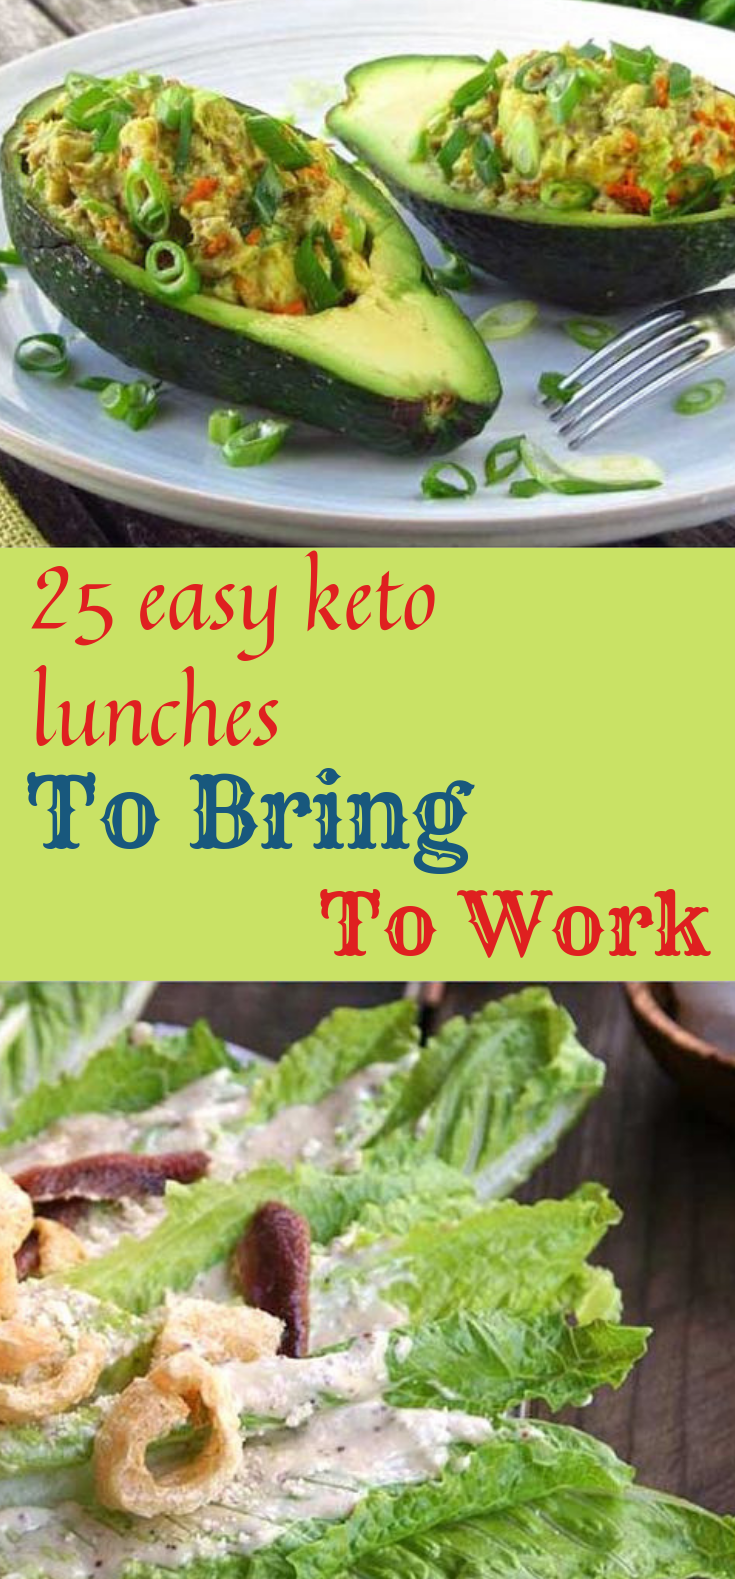 25 Easy Keto Lunches To Bring To Work! #diet #yummy